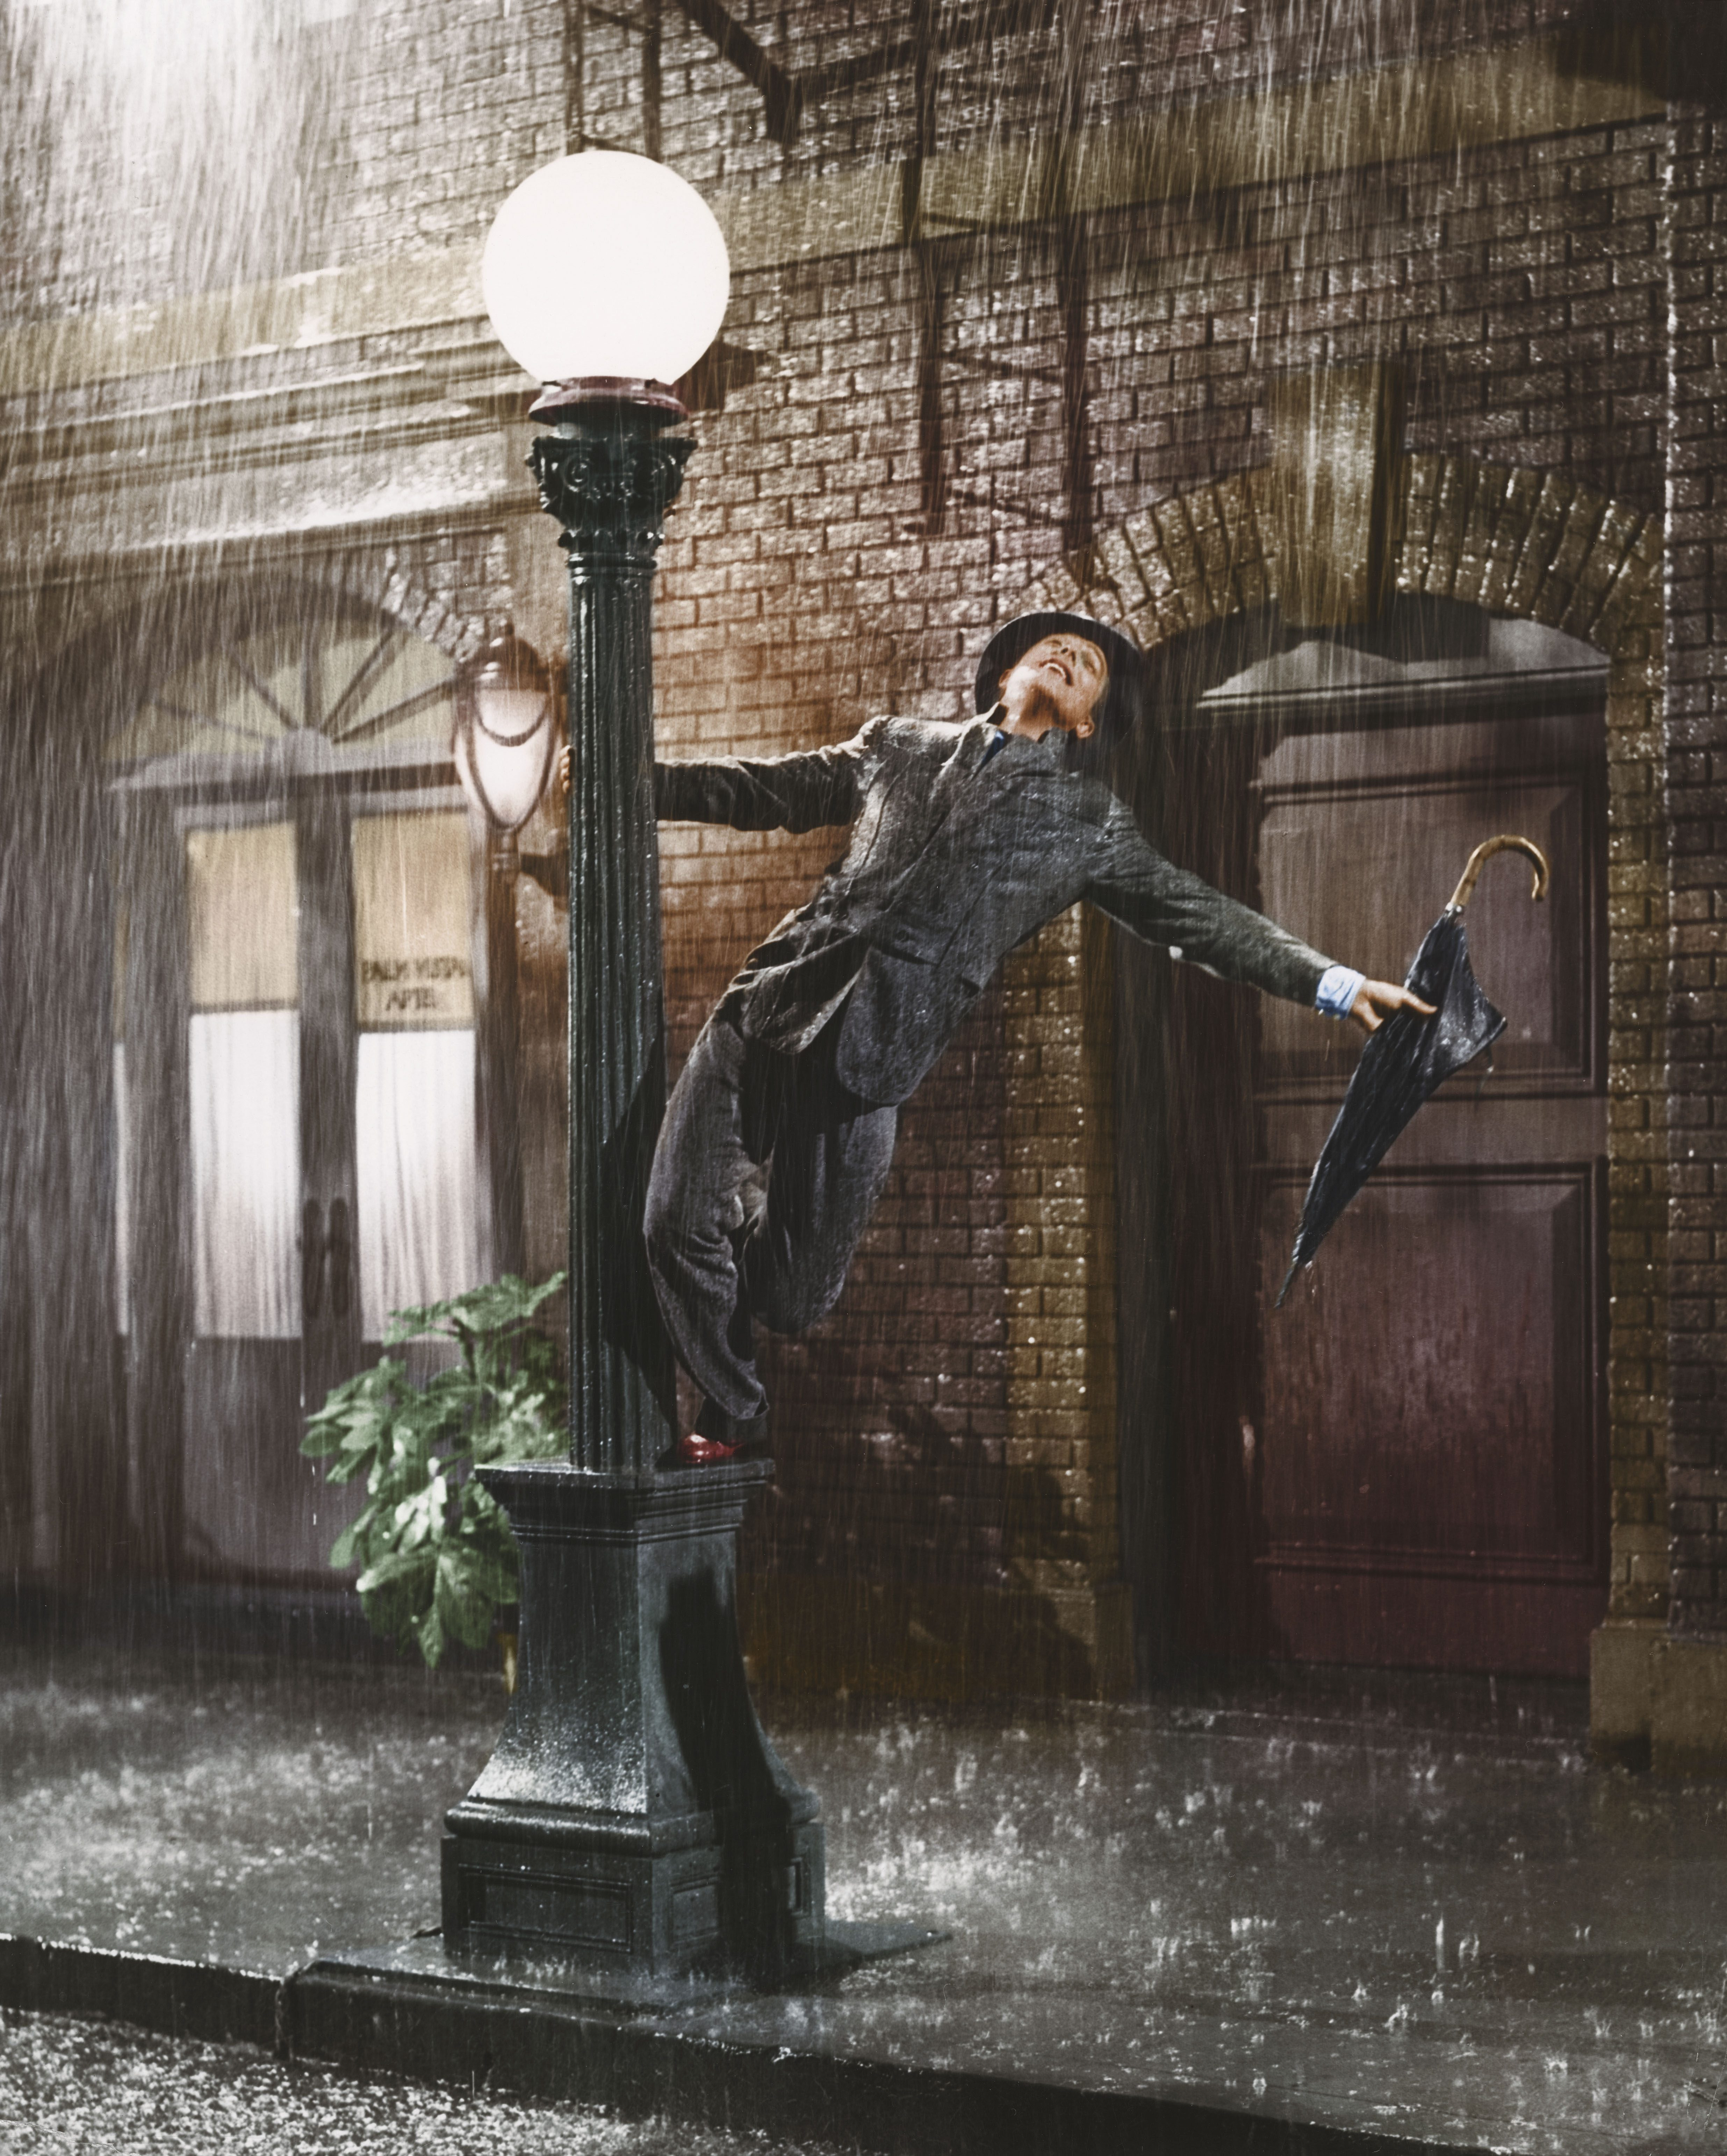 Editorial use only. No book cover usage. Mandatory Credit: Photo by Mgm/Kobal/Shutterstock (5886064j) Gene Kelly Singin' In The Rain - 1952 Director: Gene Kelly / Stanley Donen MGM USA Scene Still Musical Singing In The Rain Chantons sous la pluie